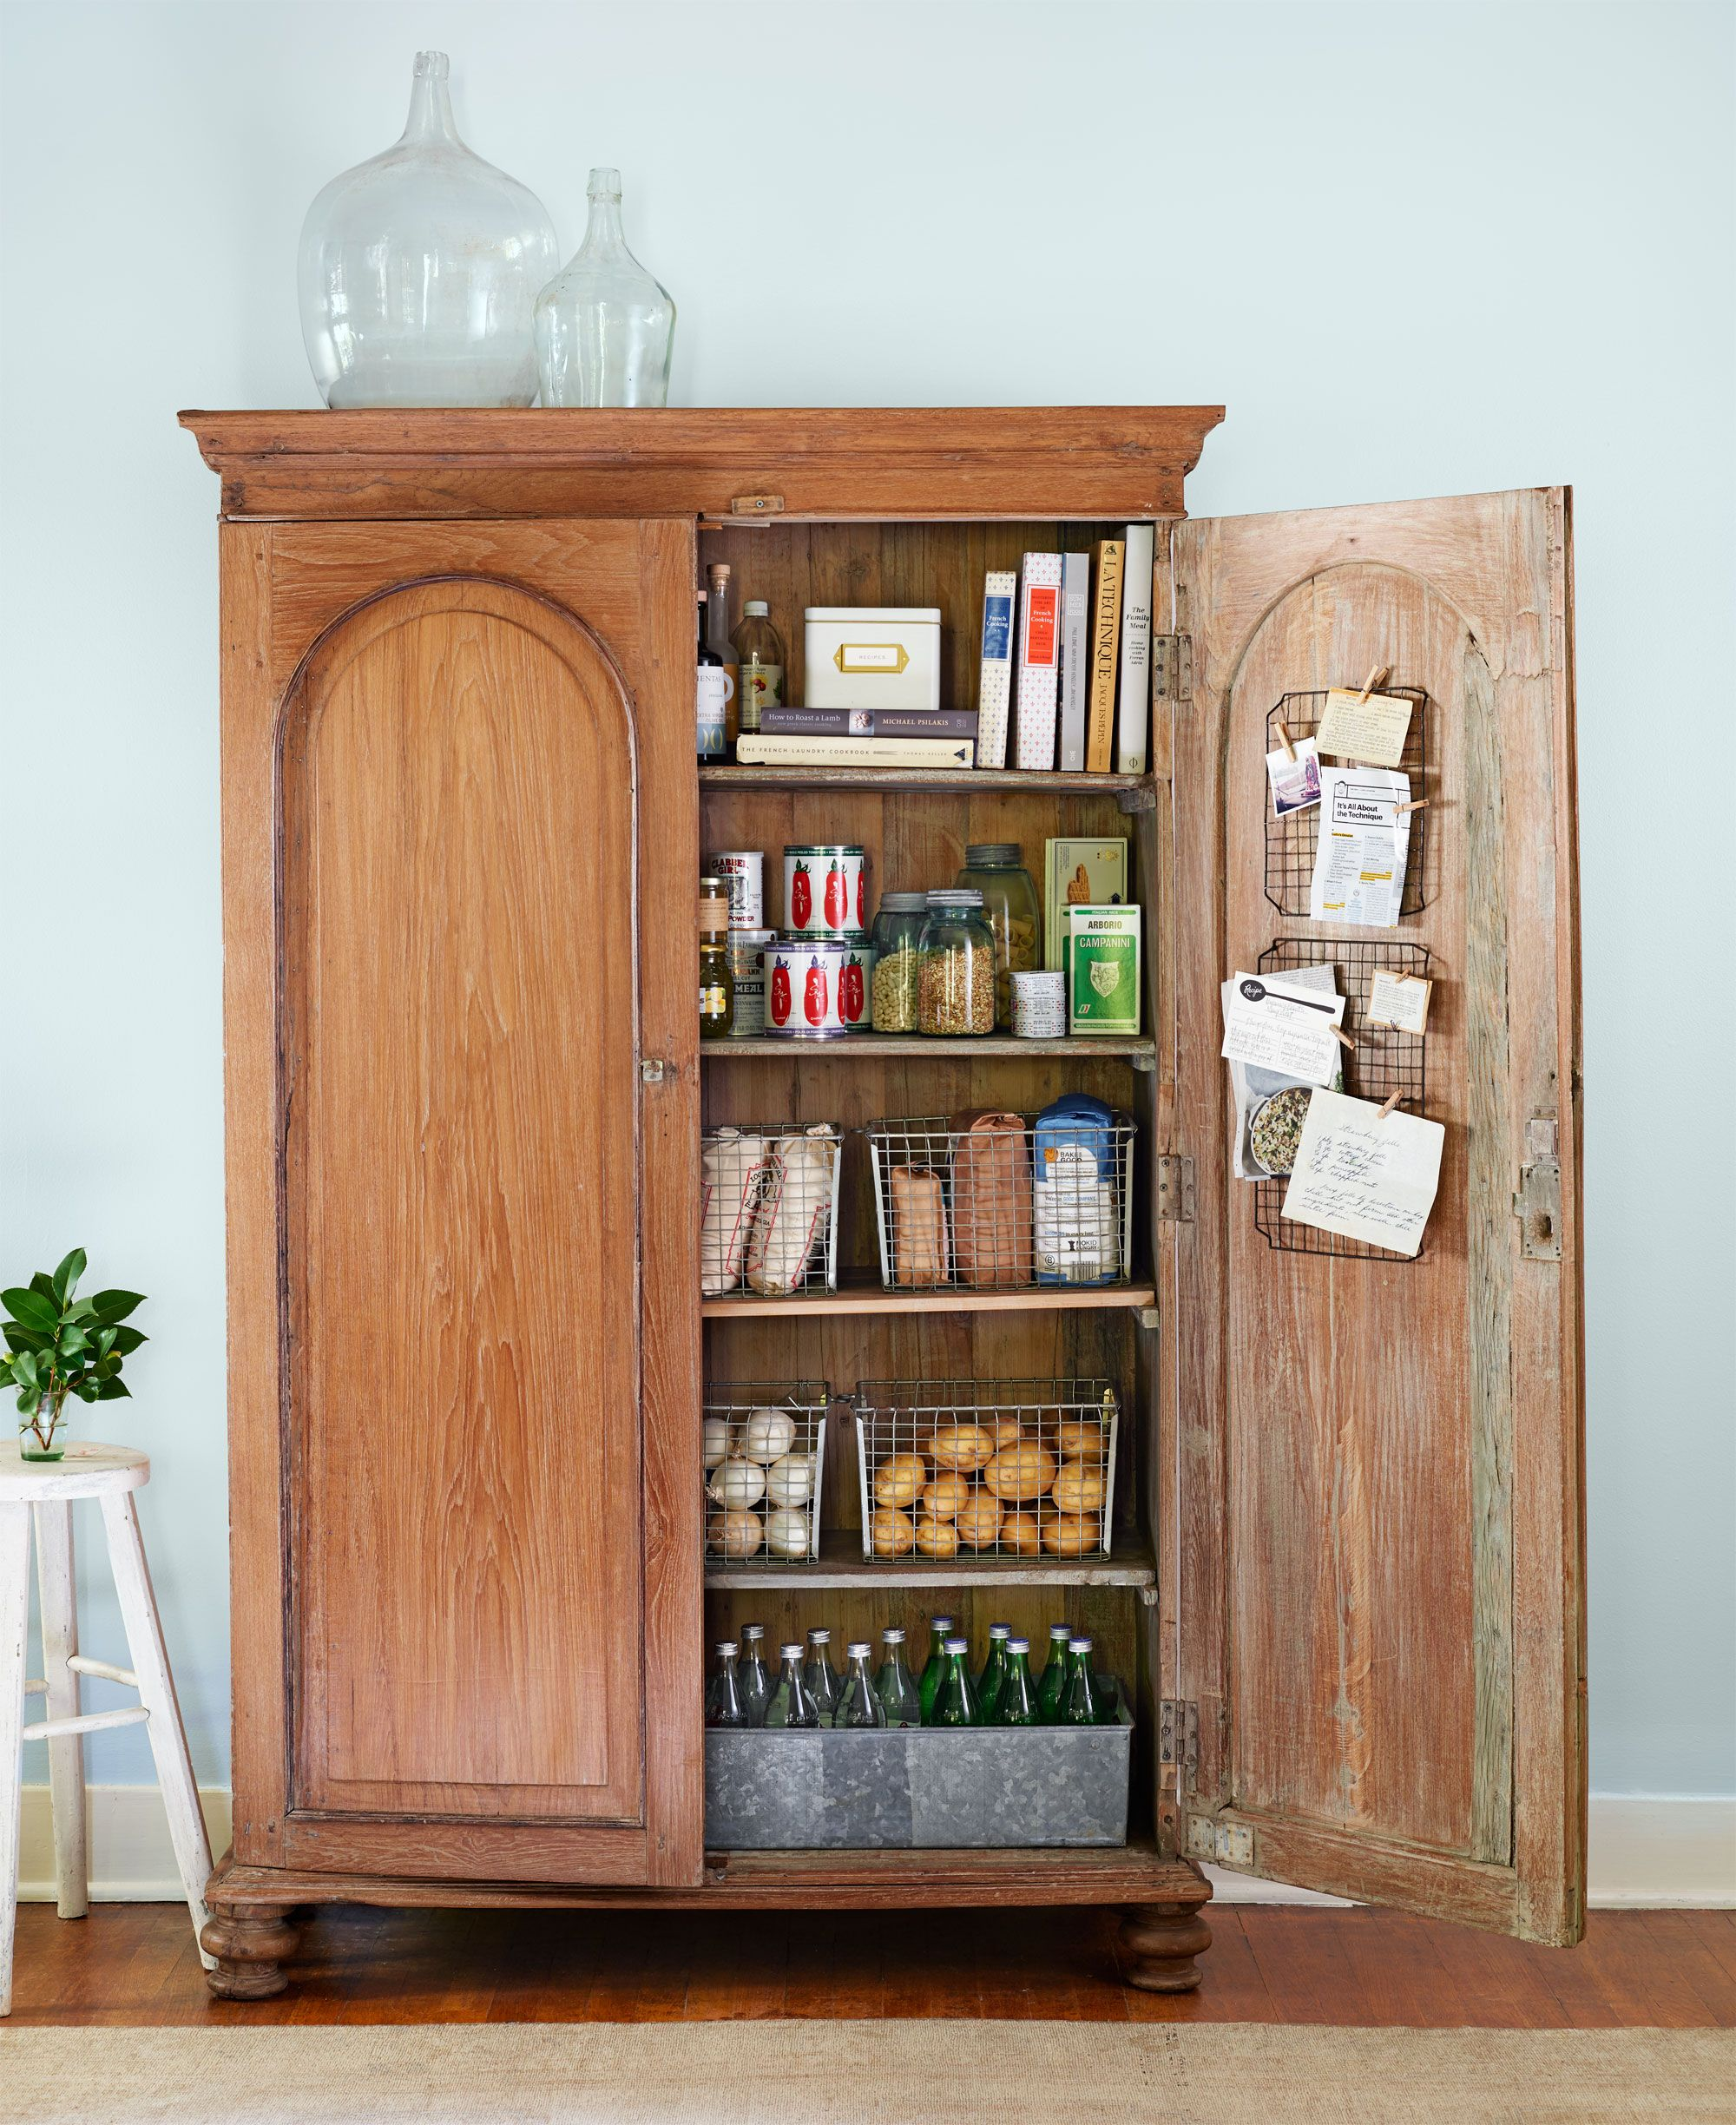 14 Beautiful Pantries That Will Give You New Organization Goals